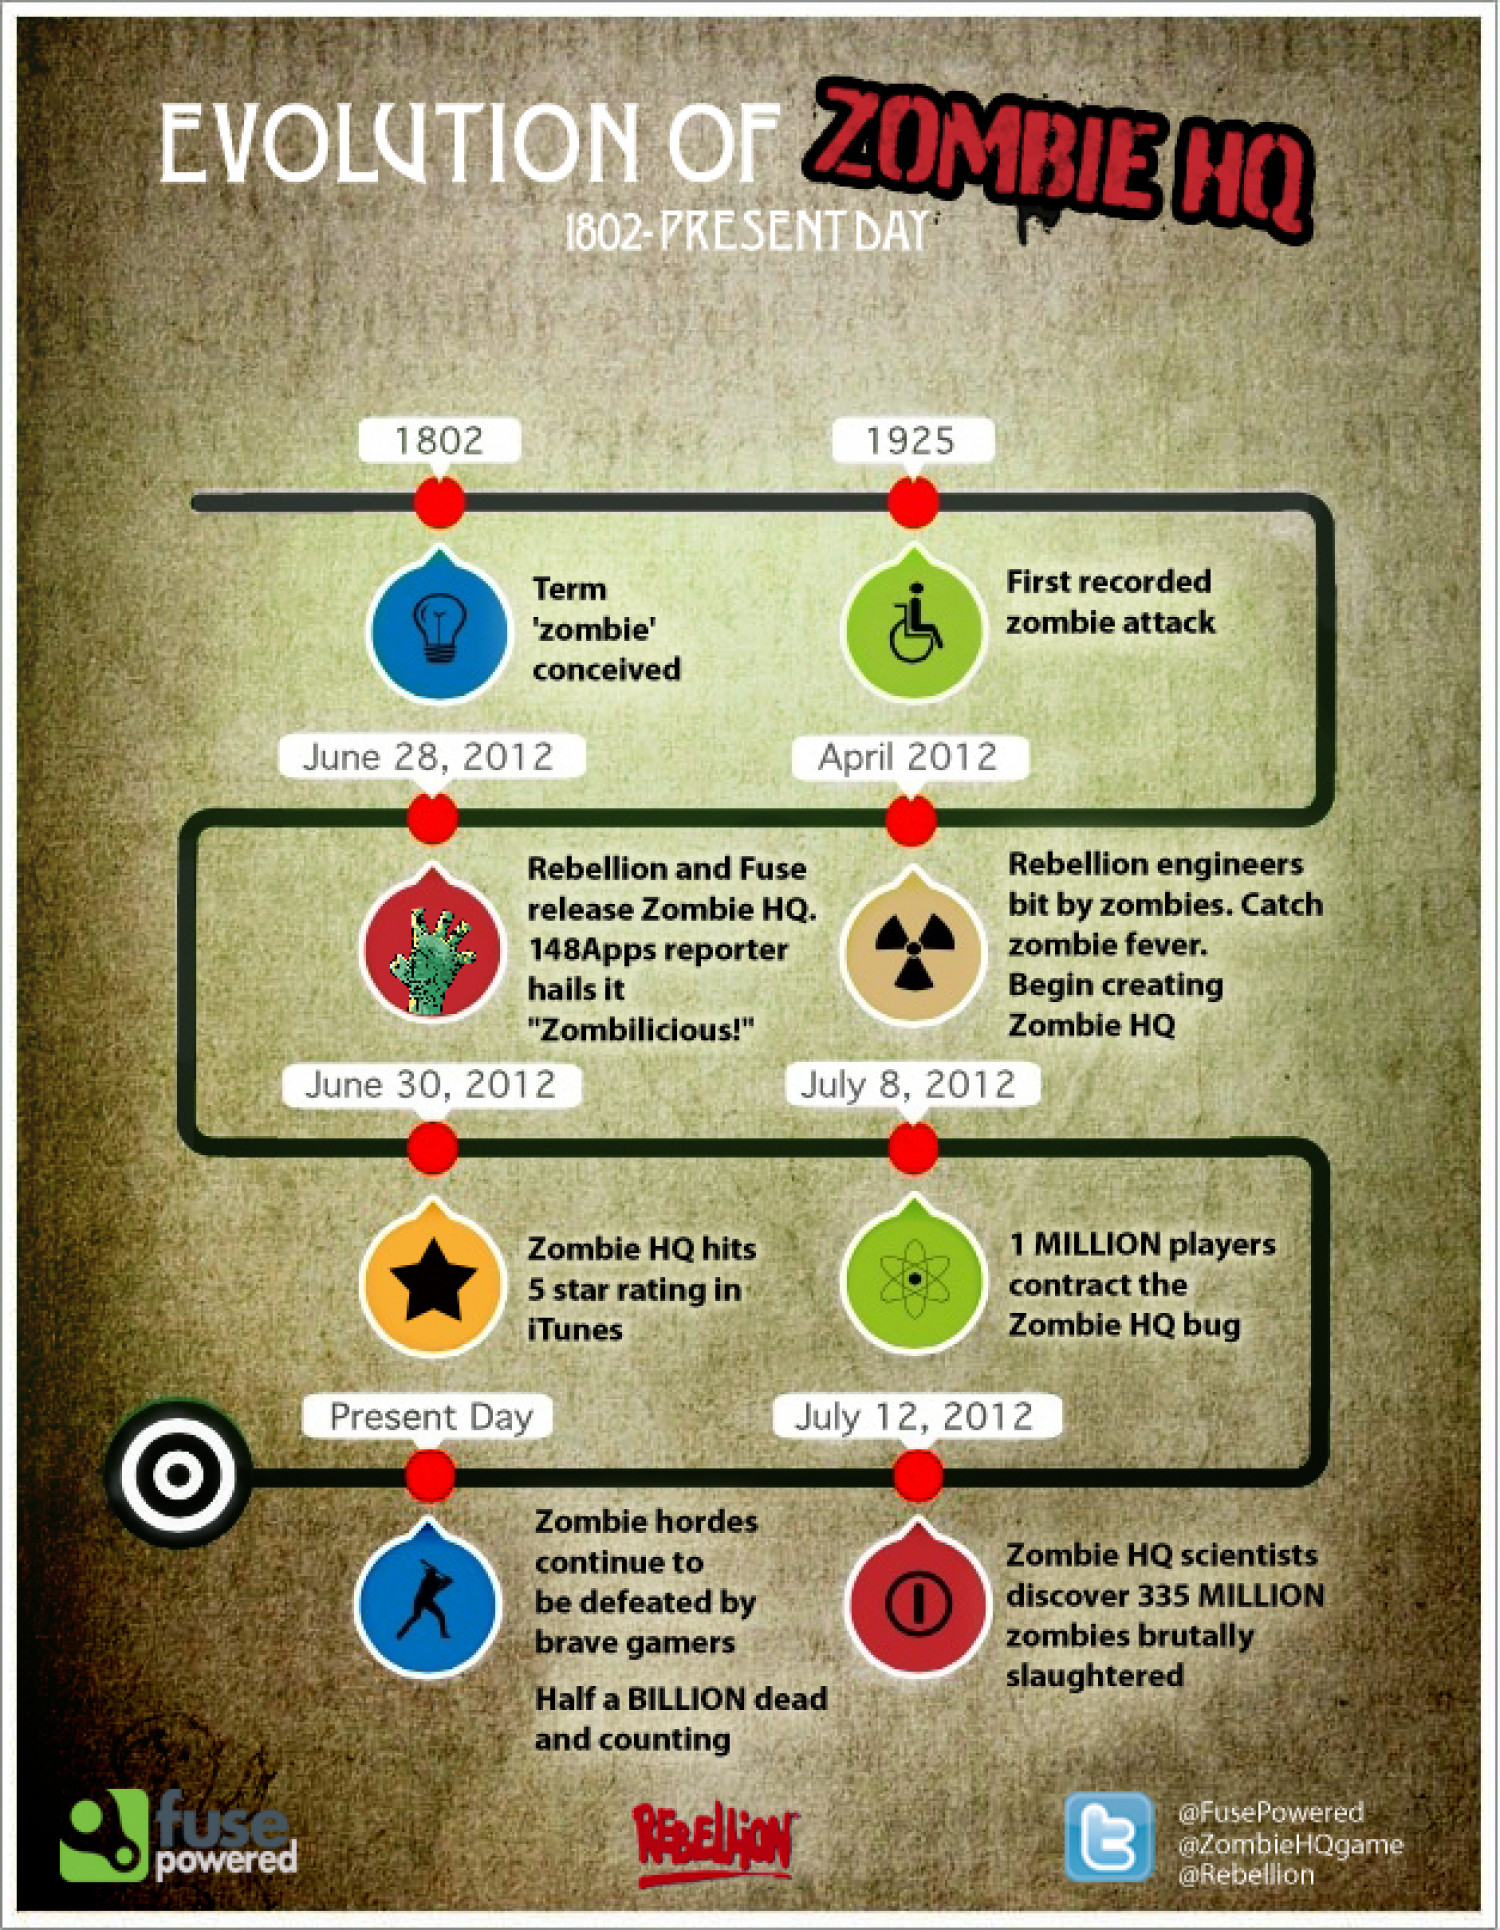 Evolution of Zombie HQ Infographic